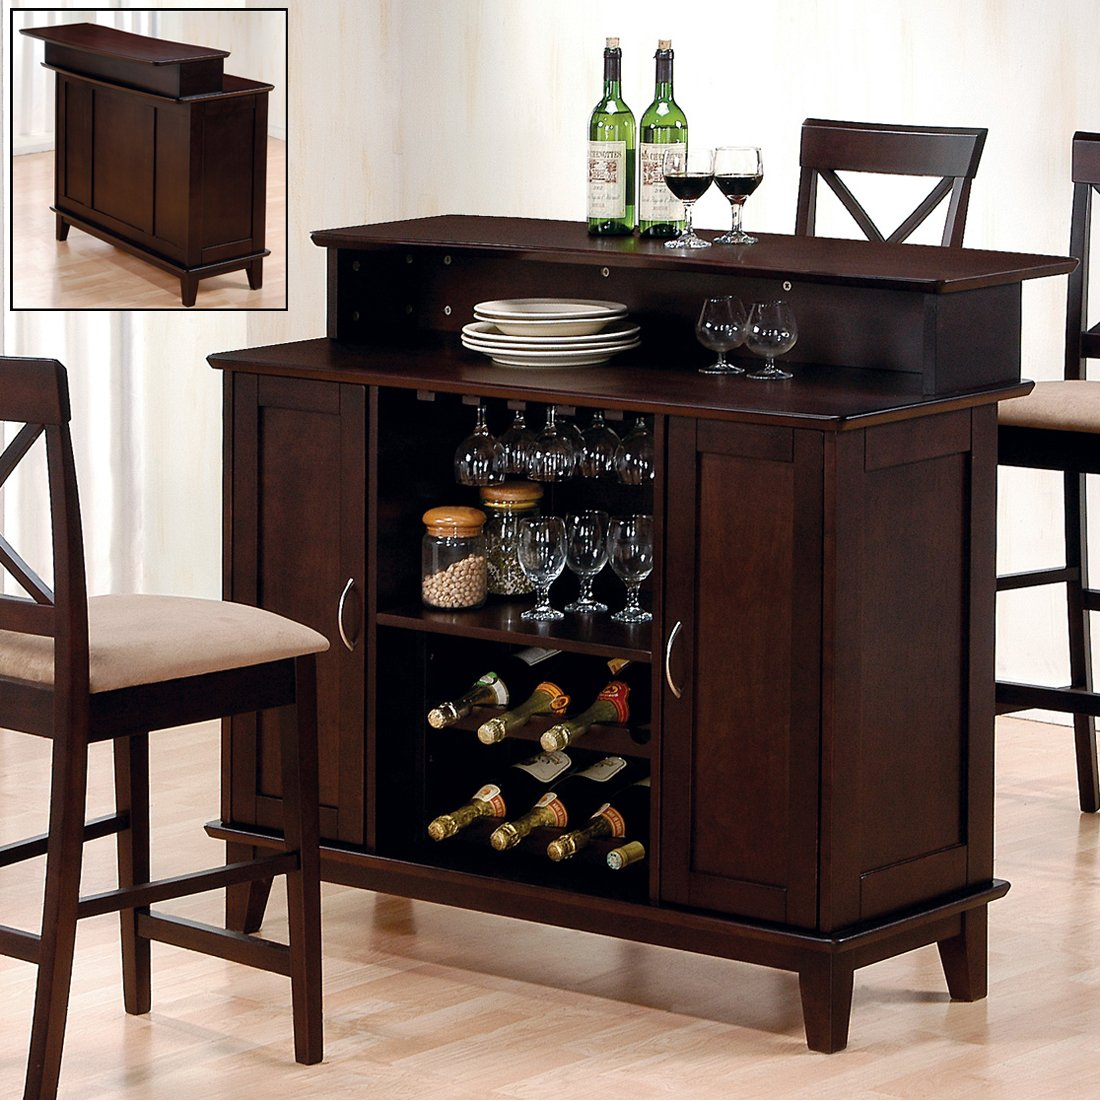 Small bar furniture for apartment best decor things Home pub bar furniture